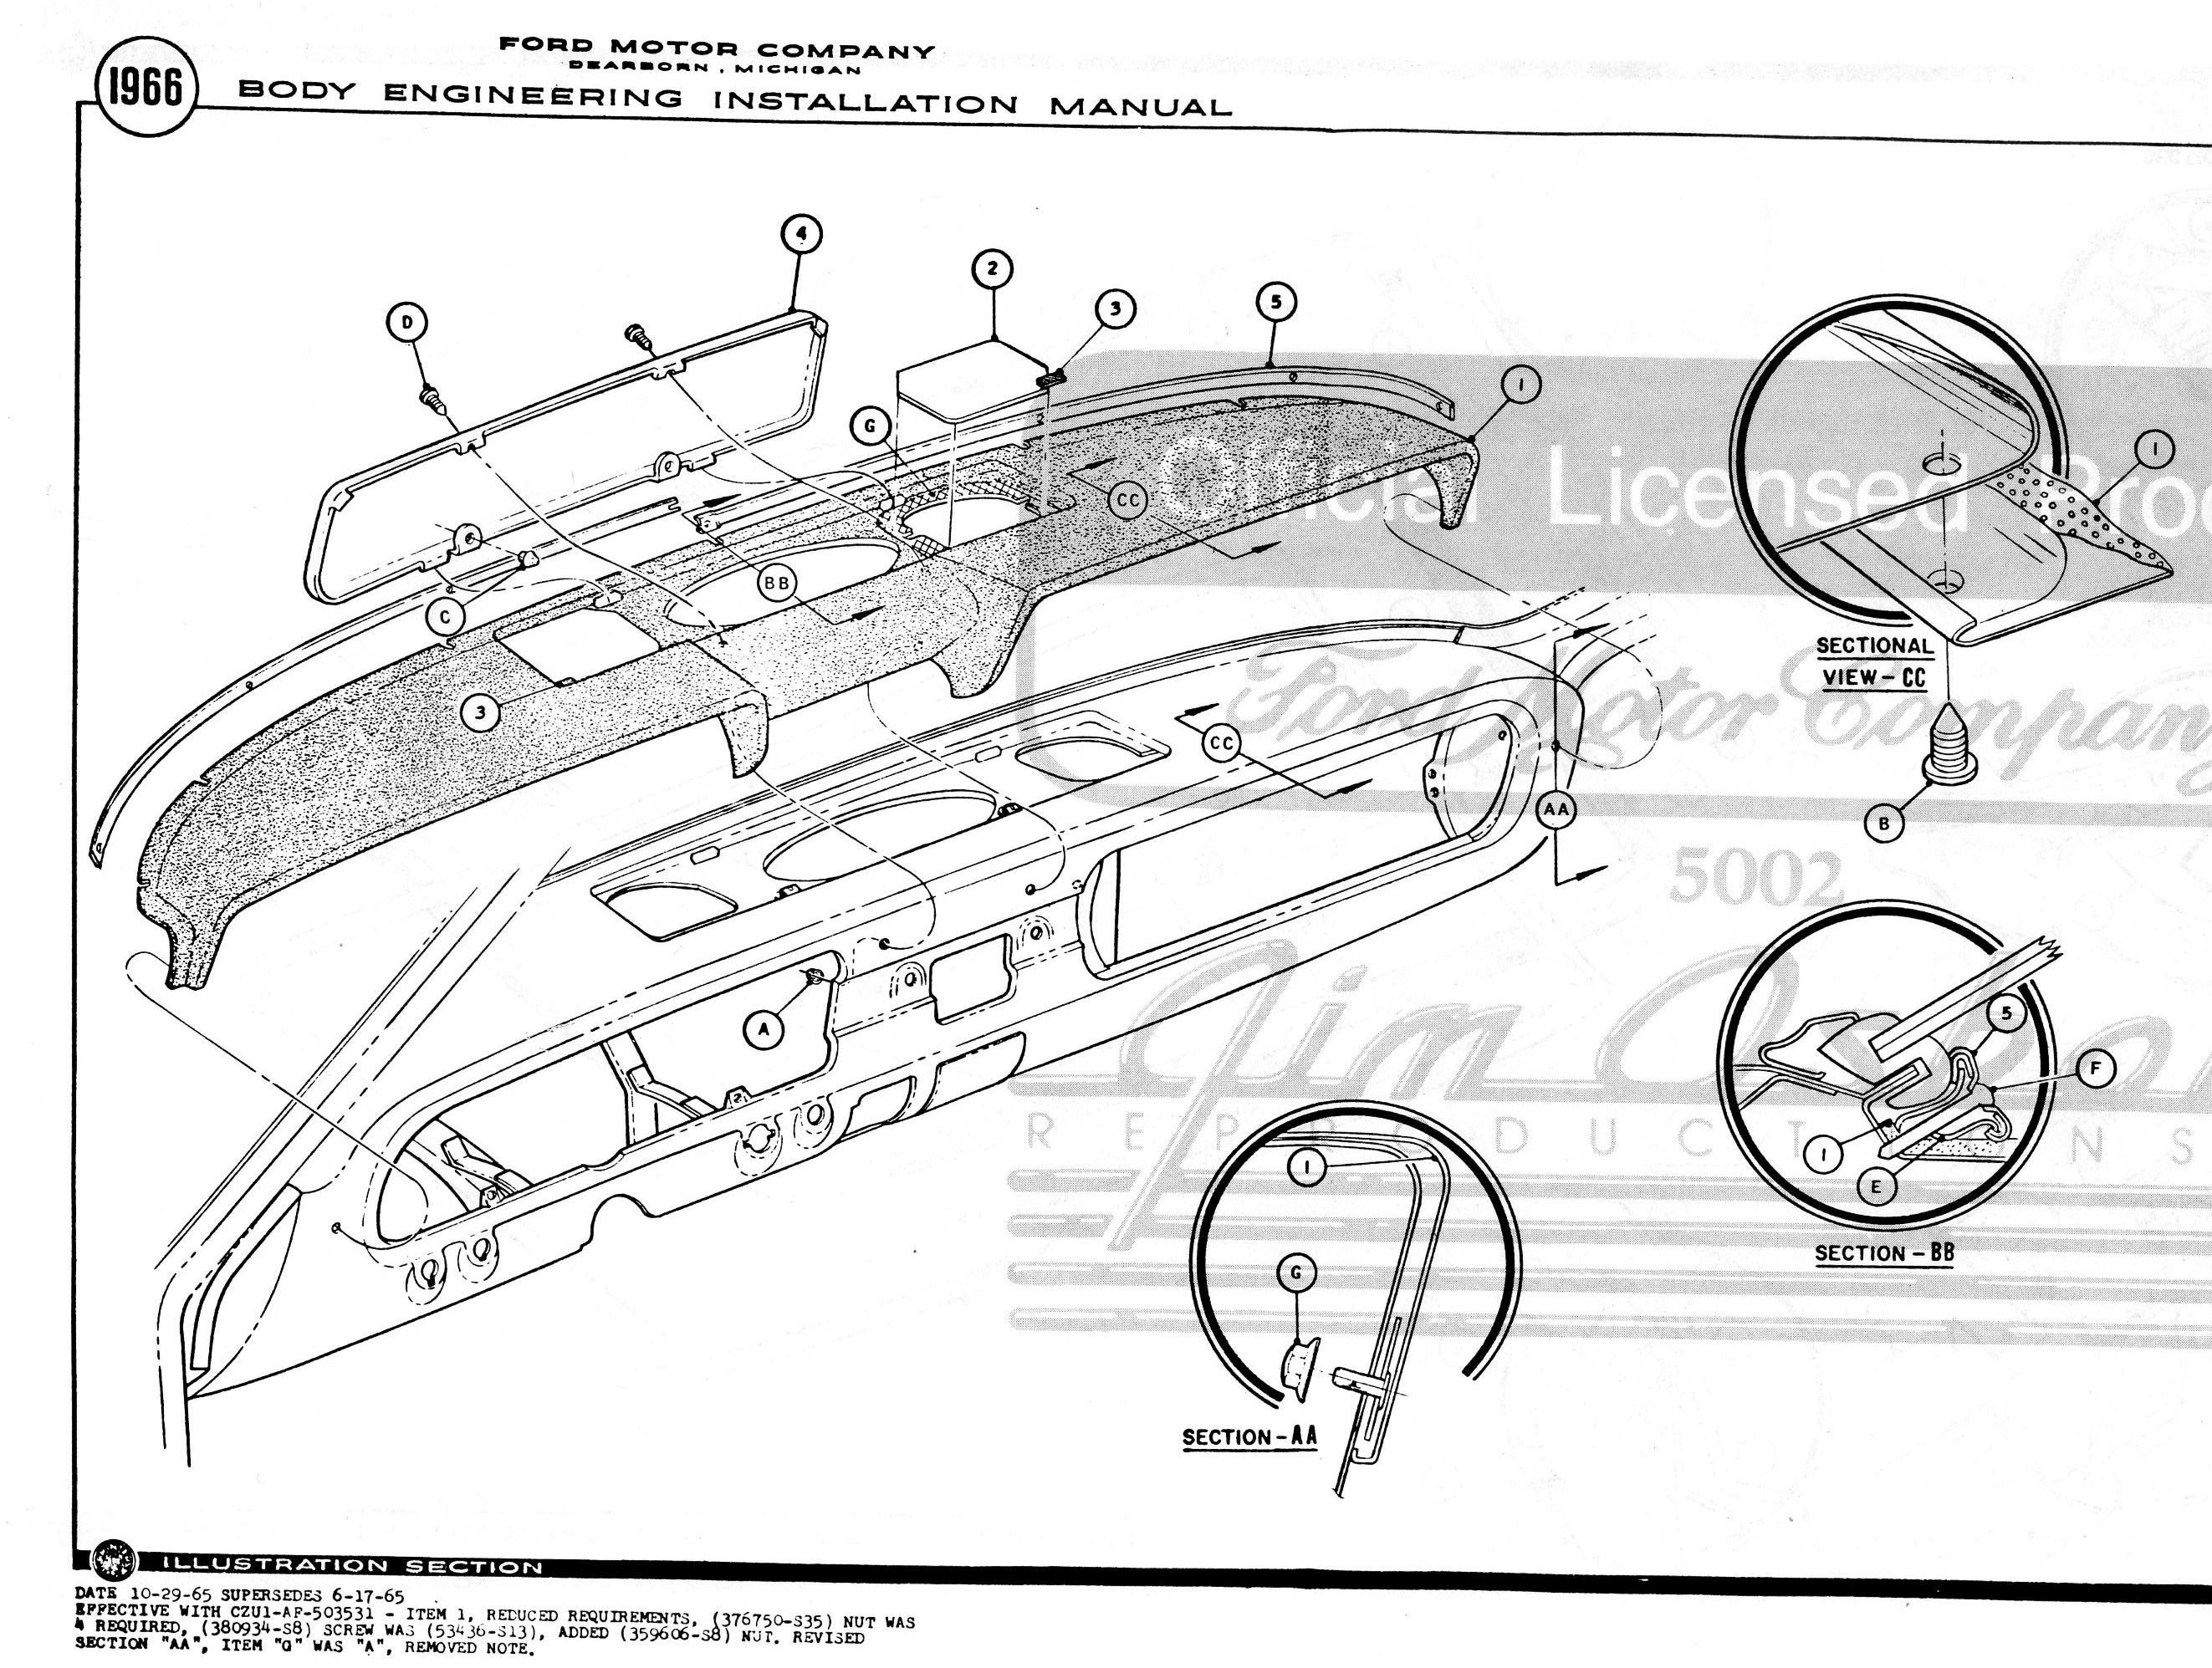 wiring diagram for 96 mustang gt. wiring. discover your wiring, Wiring diagram